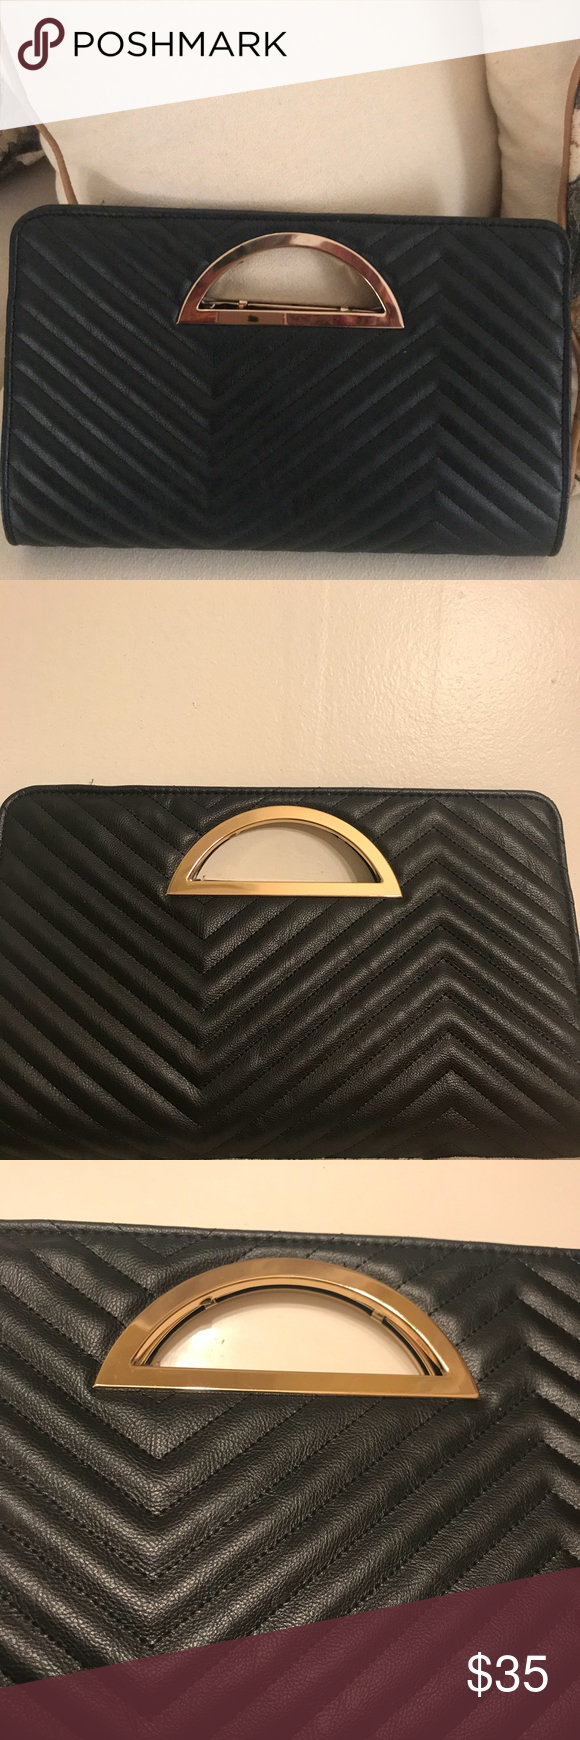 fad383408e Classy Black clutch bag Beautiful and stylish black clutch with gold  handle. Inside has snap closure and pocket. Can fit a nice amount of things  inside.